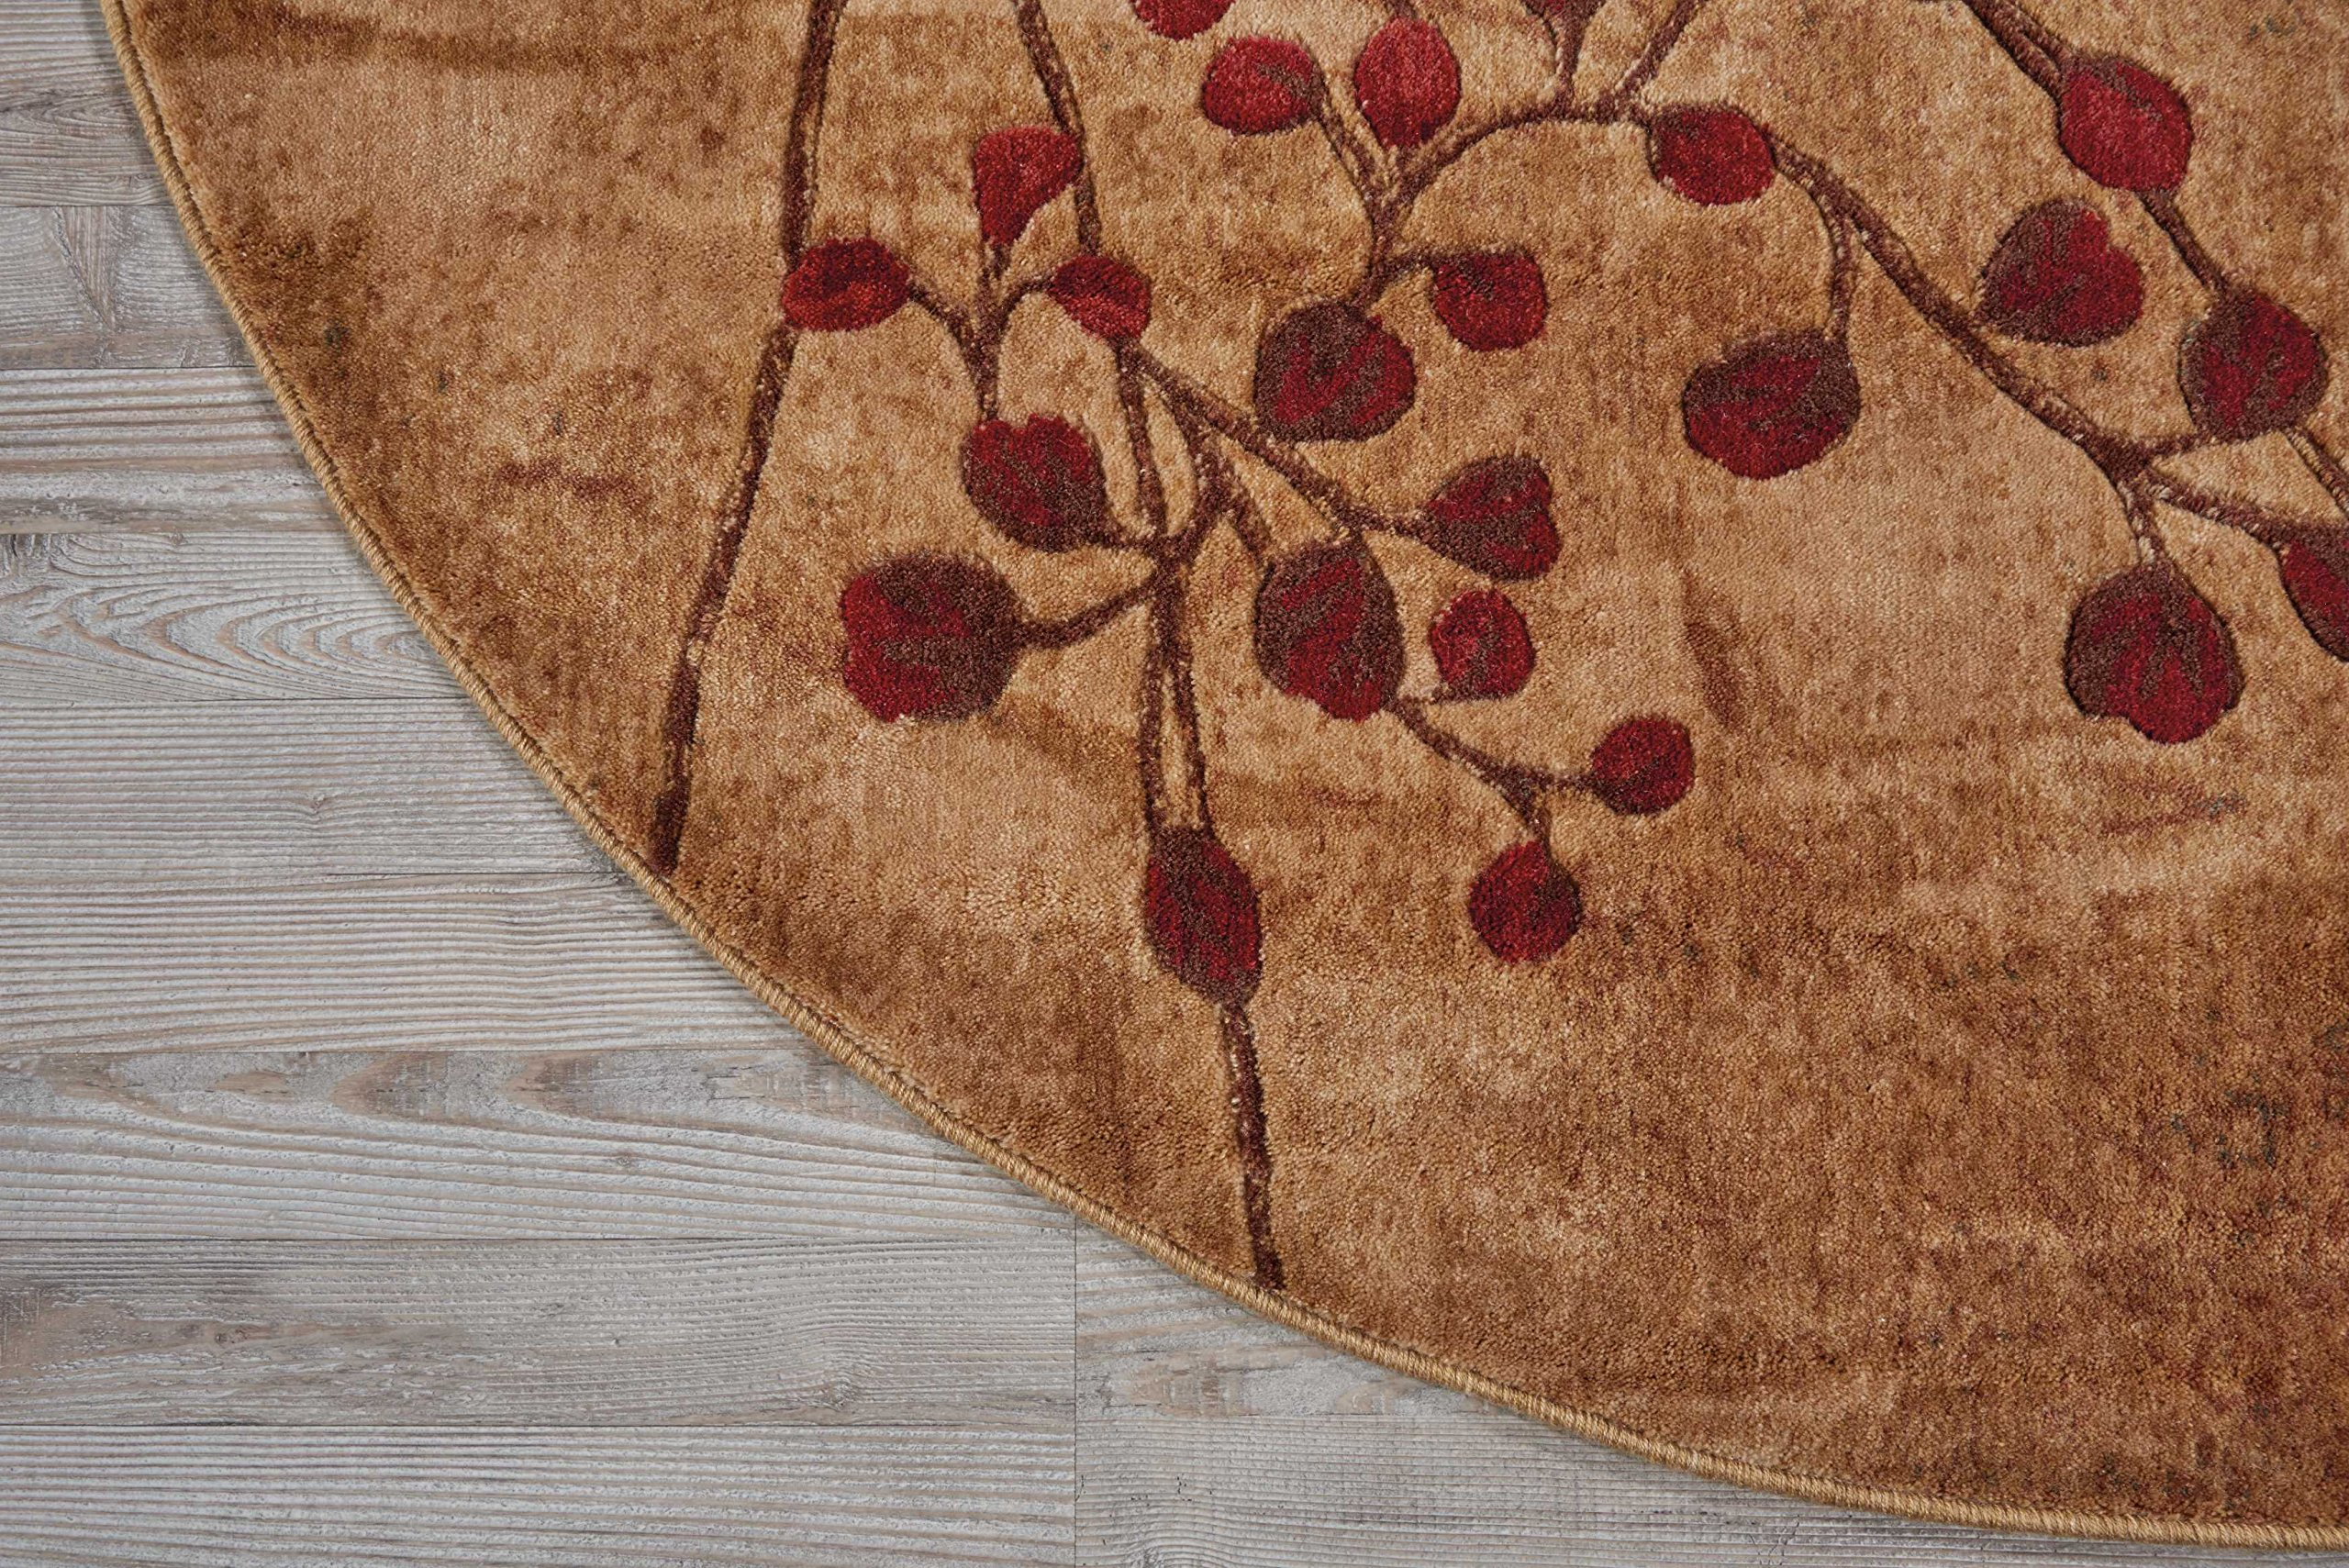 Nourison Somerset (ST74) Latte Round Area Rug, 5-Feet 6-Inches by 5-Feet 6-Inches (5'6'' x 5'6'') by Nourison (Image #4)